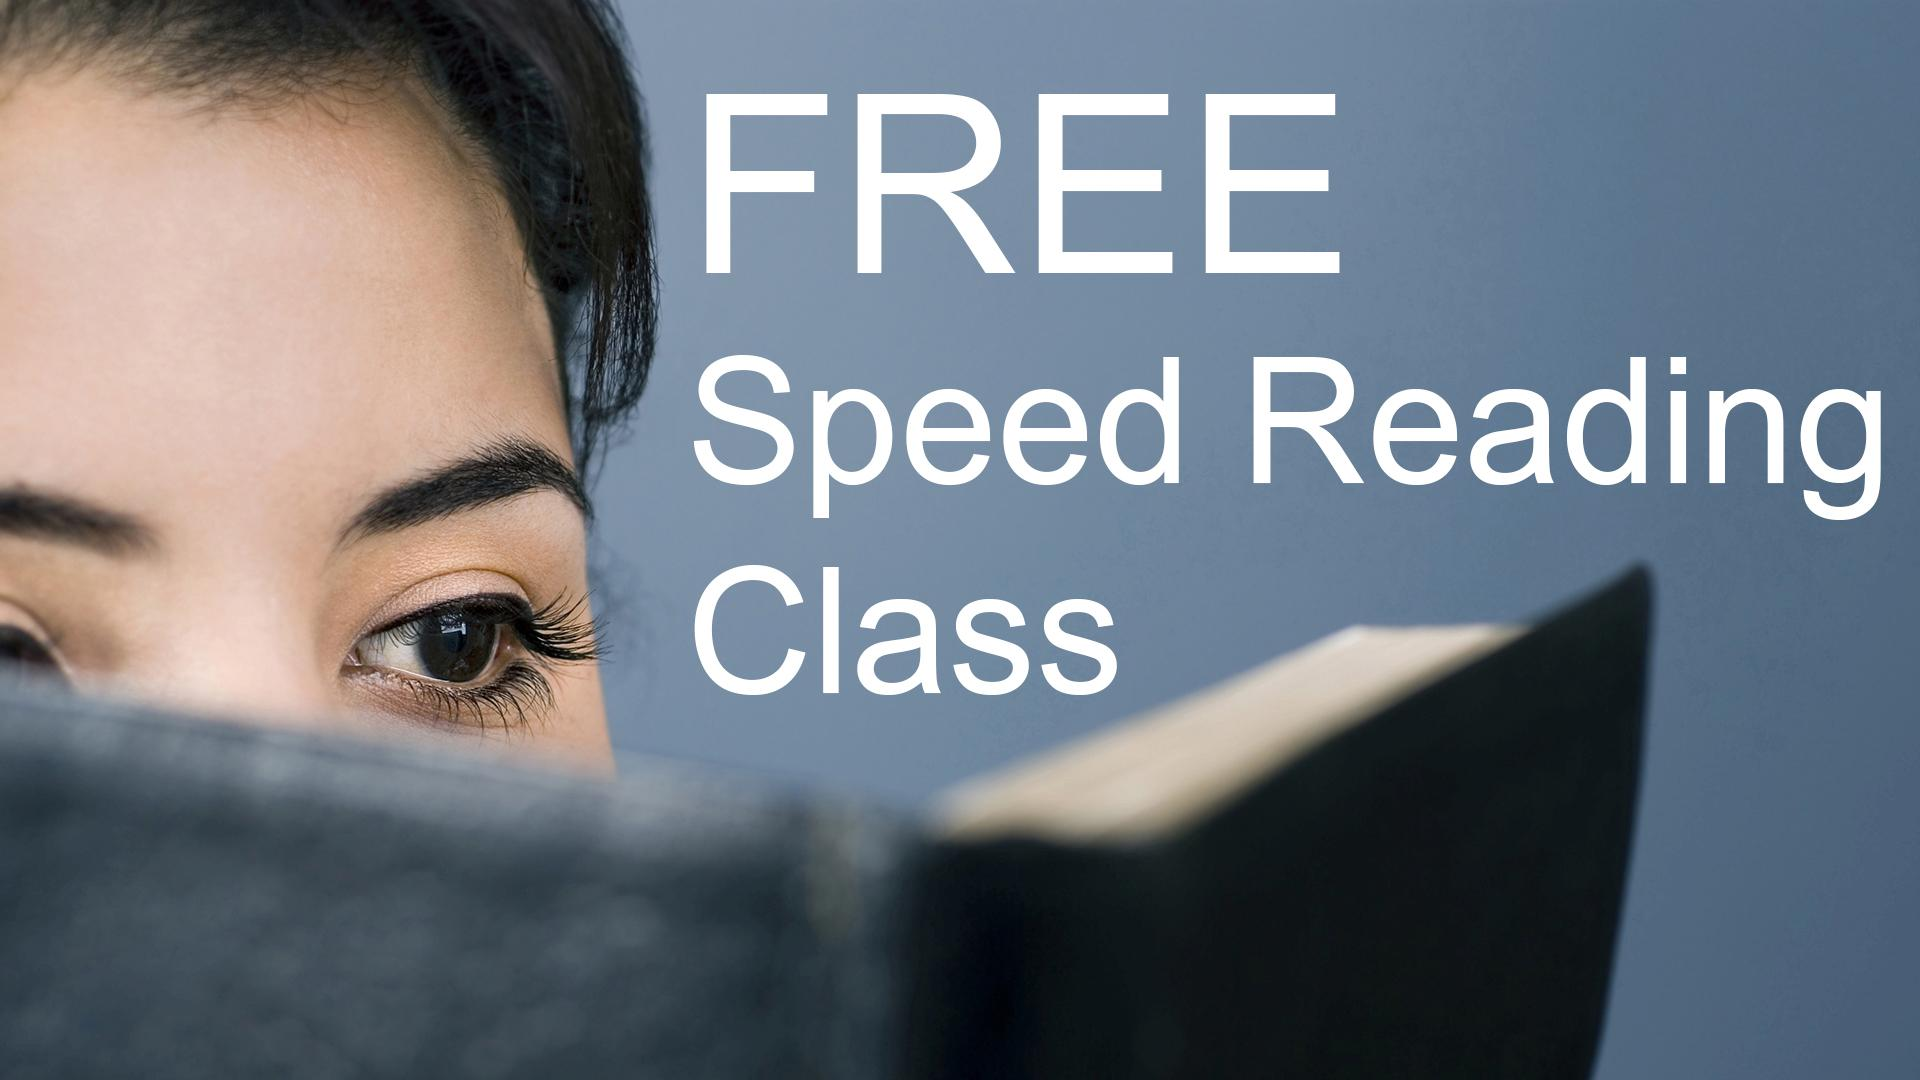 Free Speed Reading & Memorization Class - For